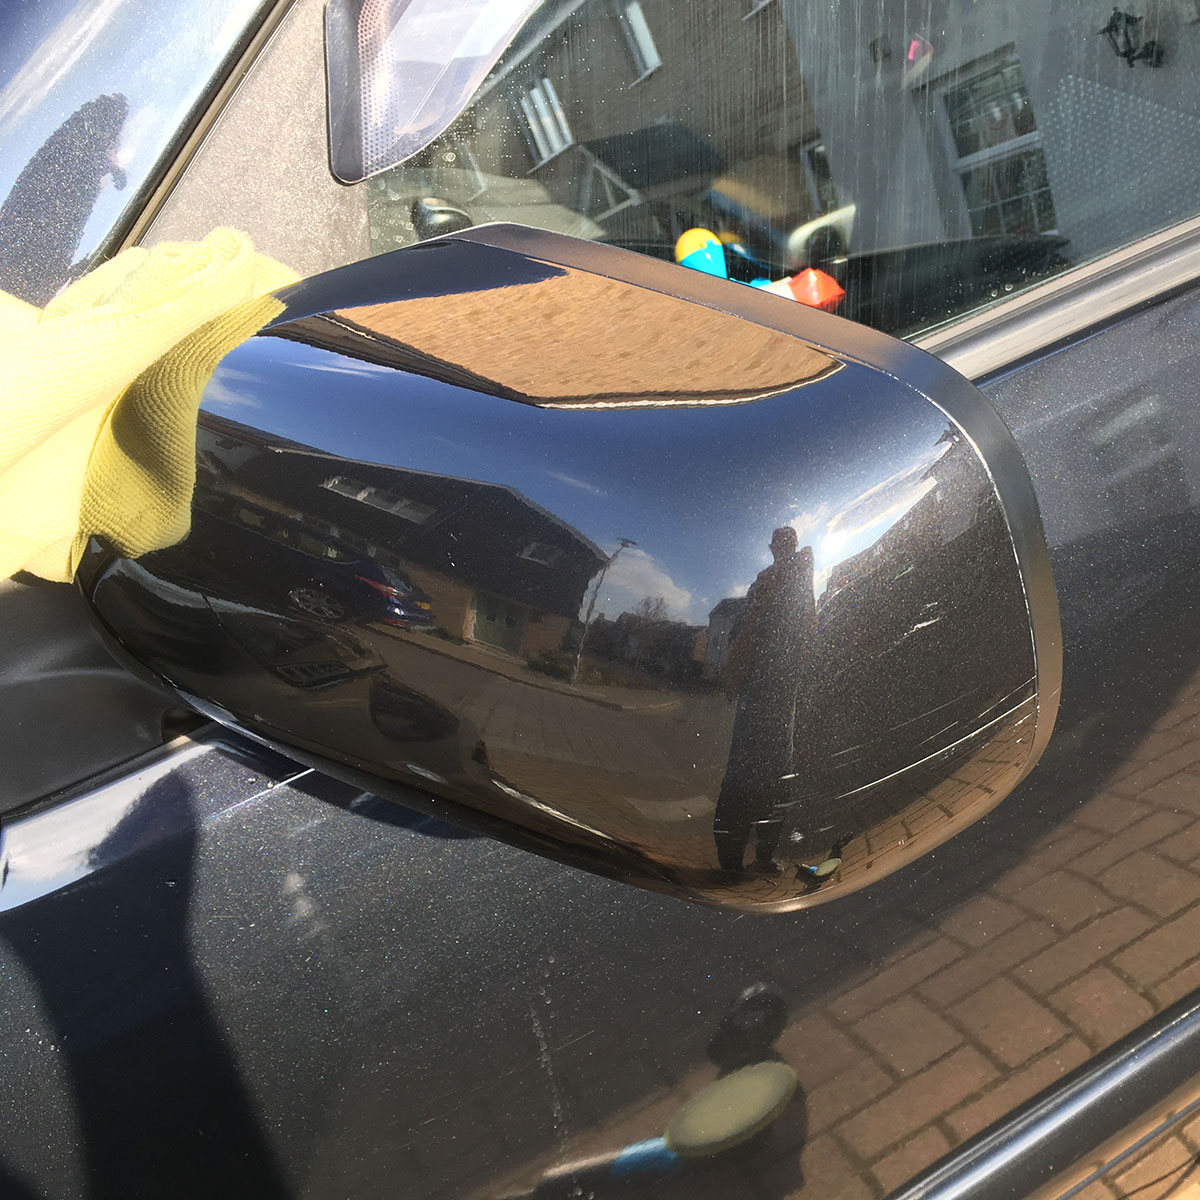 How To Get Rid Of Bush Scratches On Car